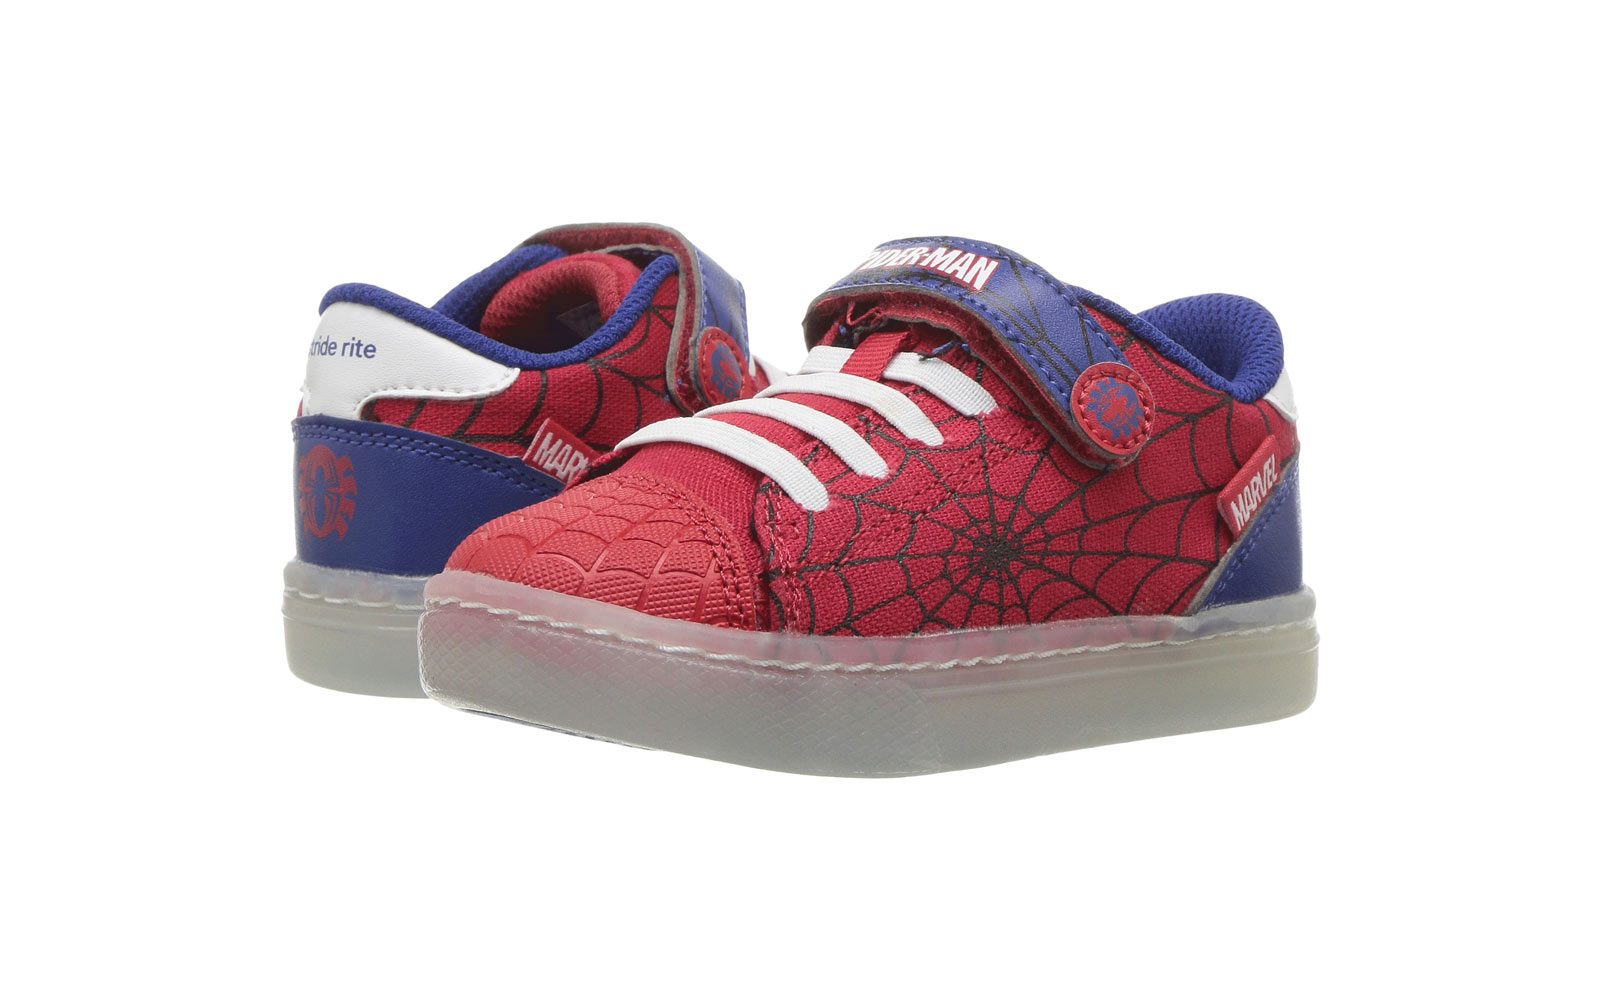 Stride Rite spiderman shoe